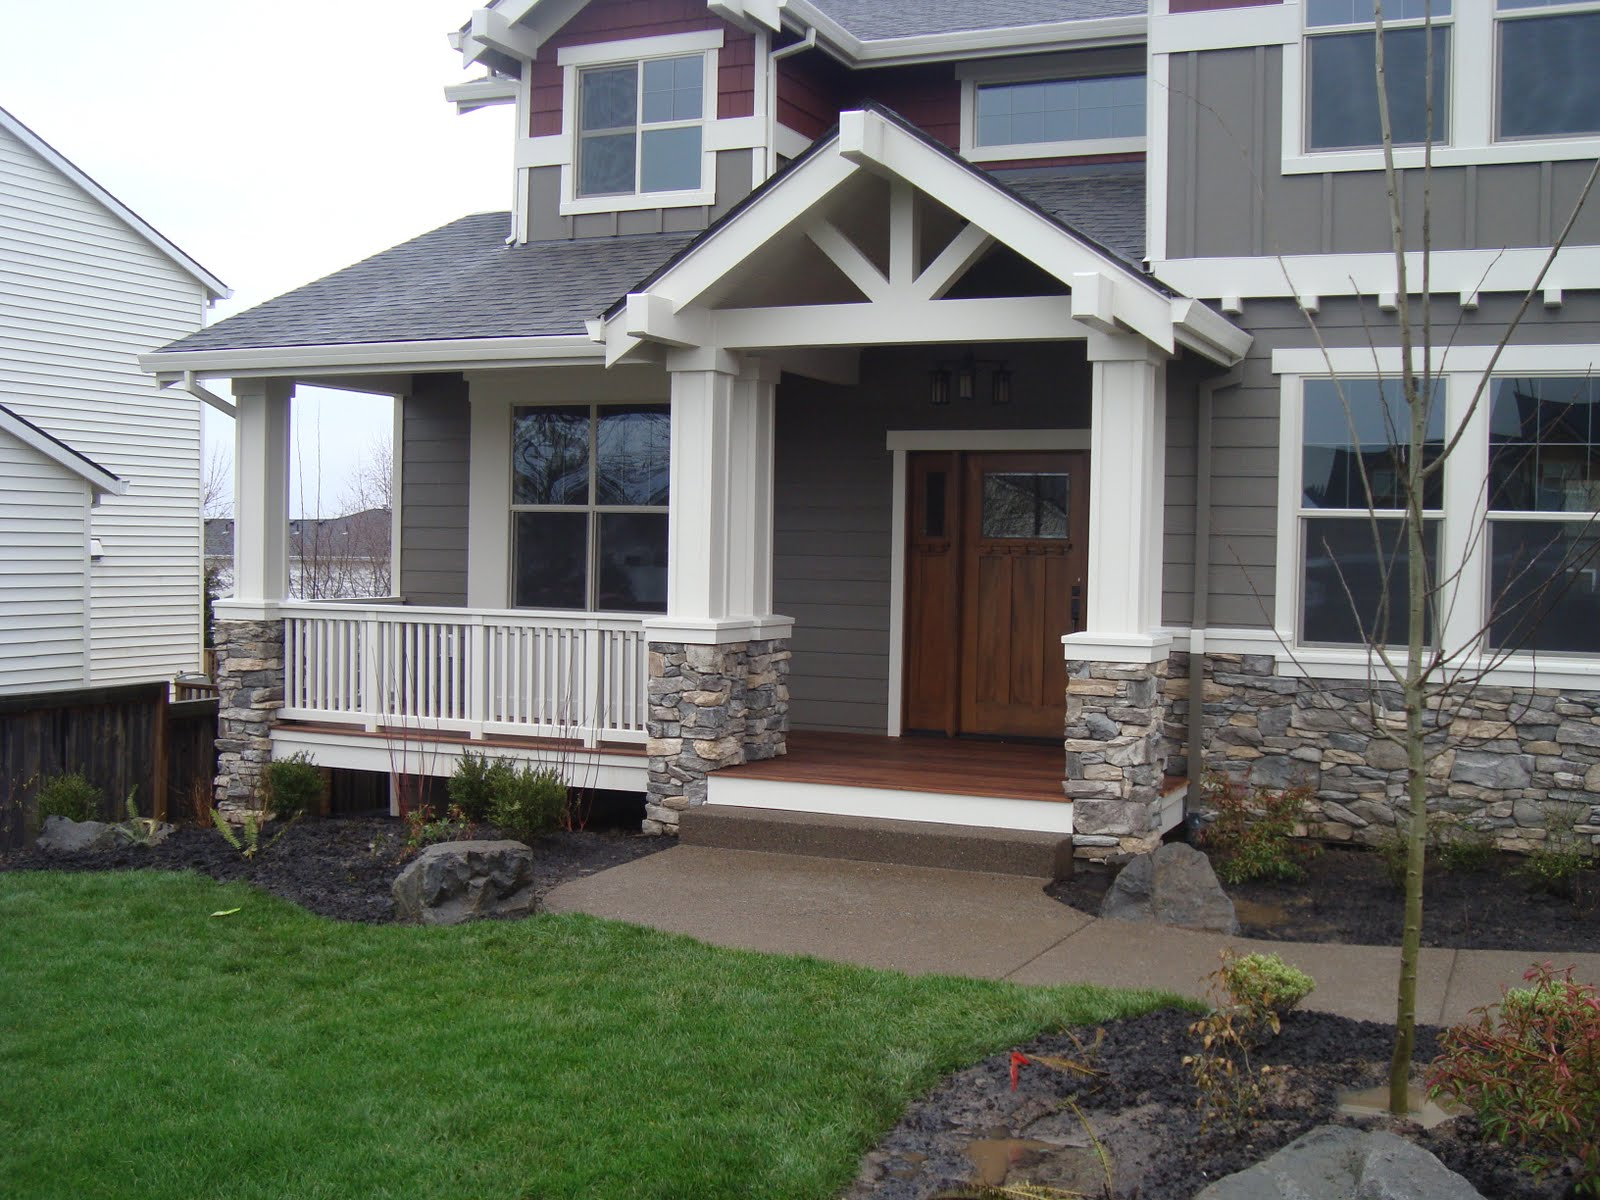 Halgren Construction: Exterior Stone Veneer And Deck